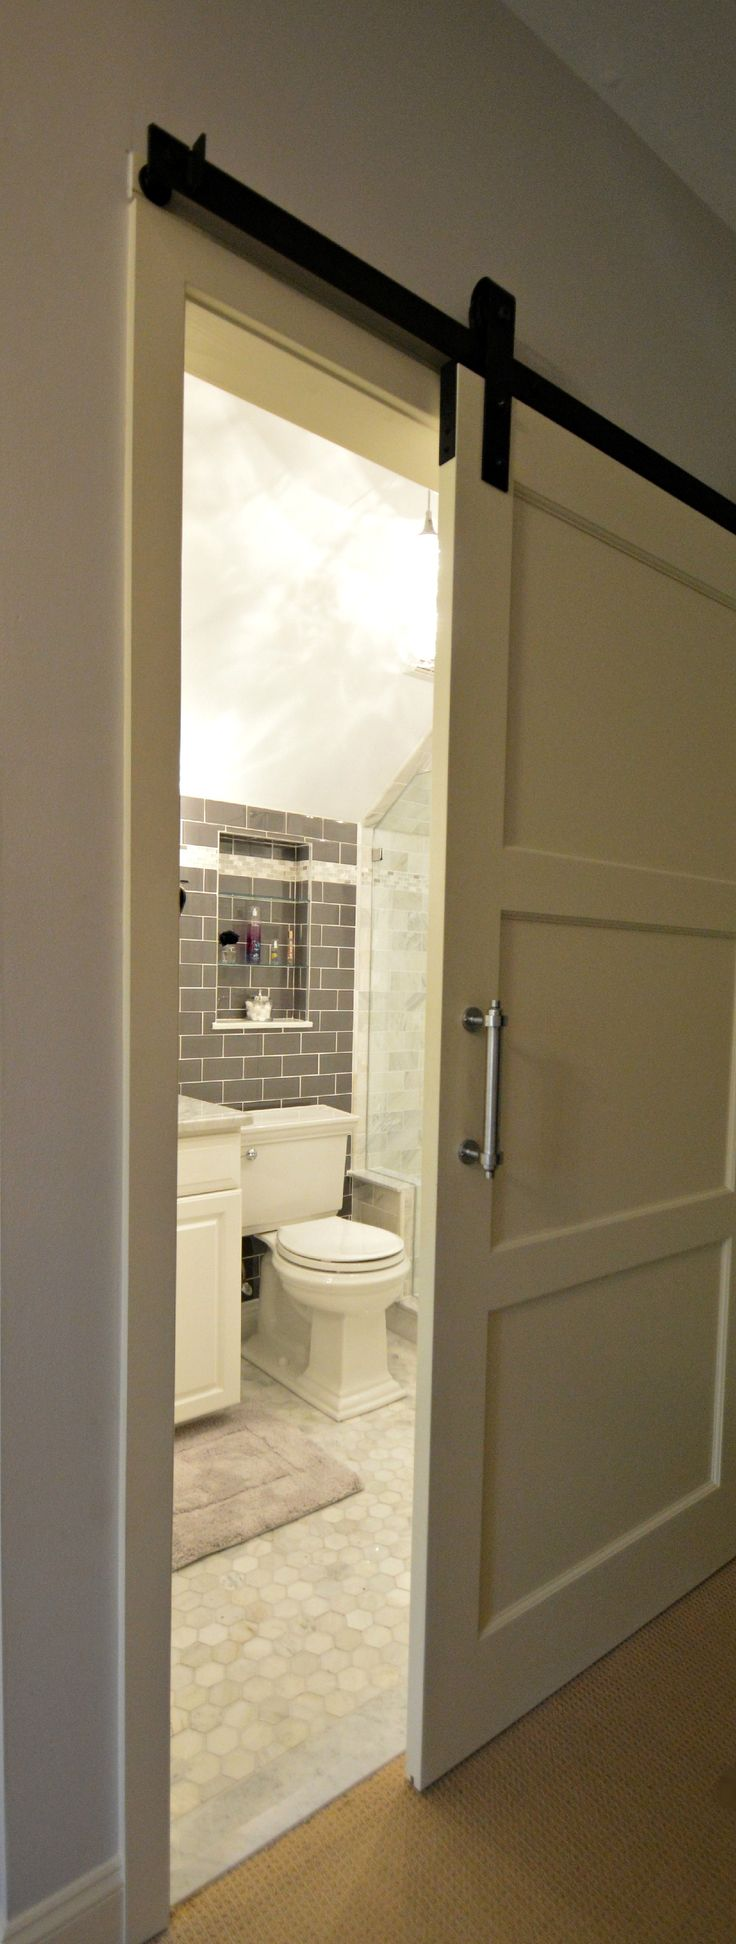 best renovation images on pinterest home bathroom ideas and